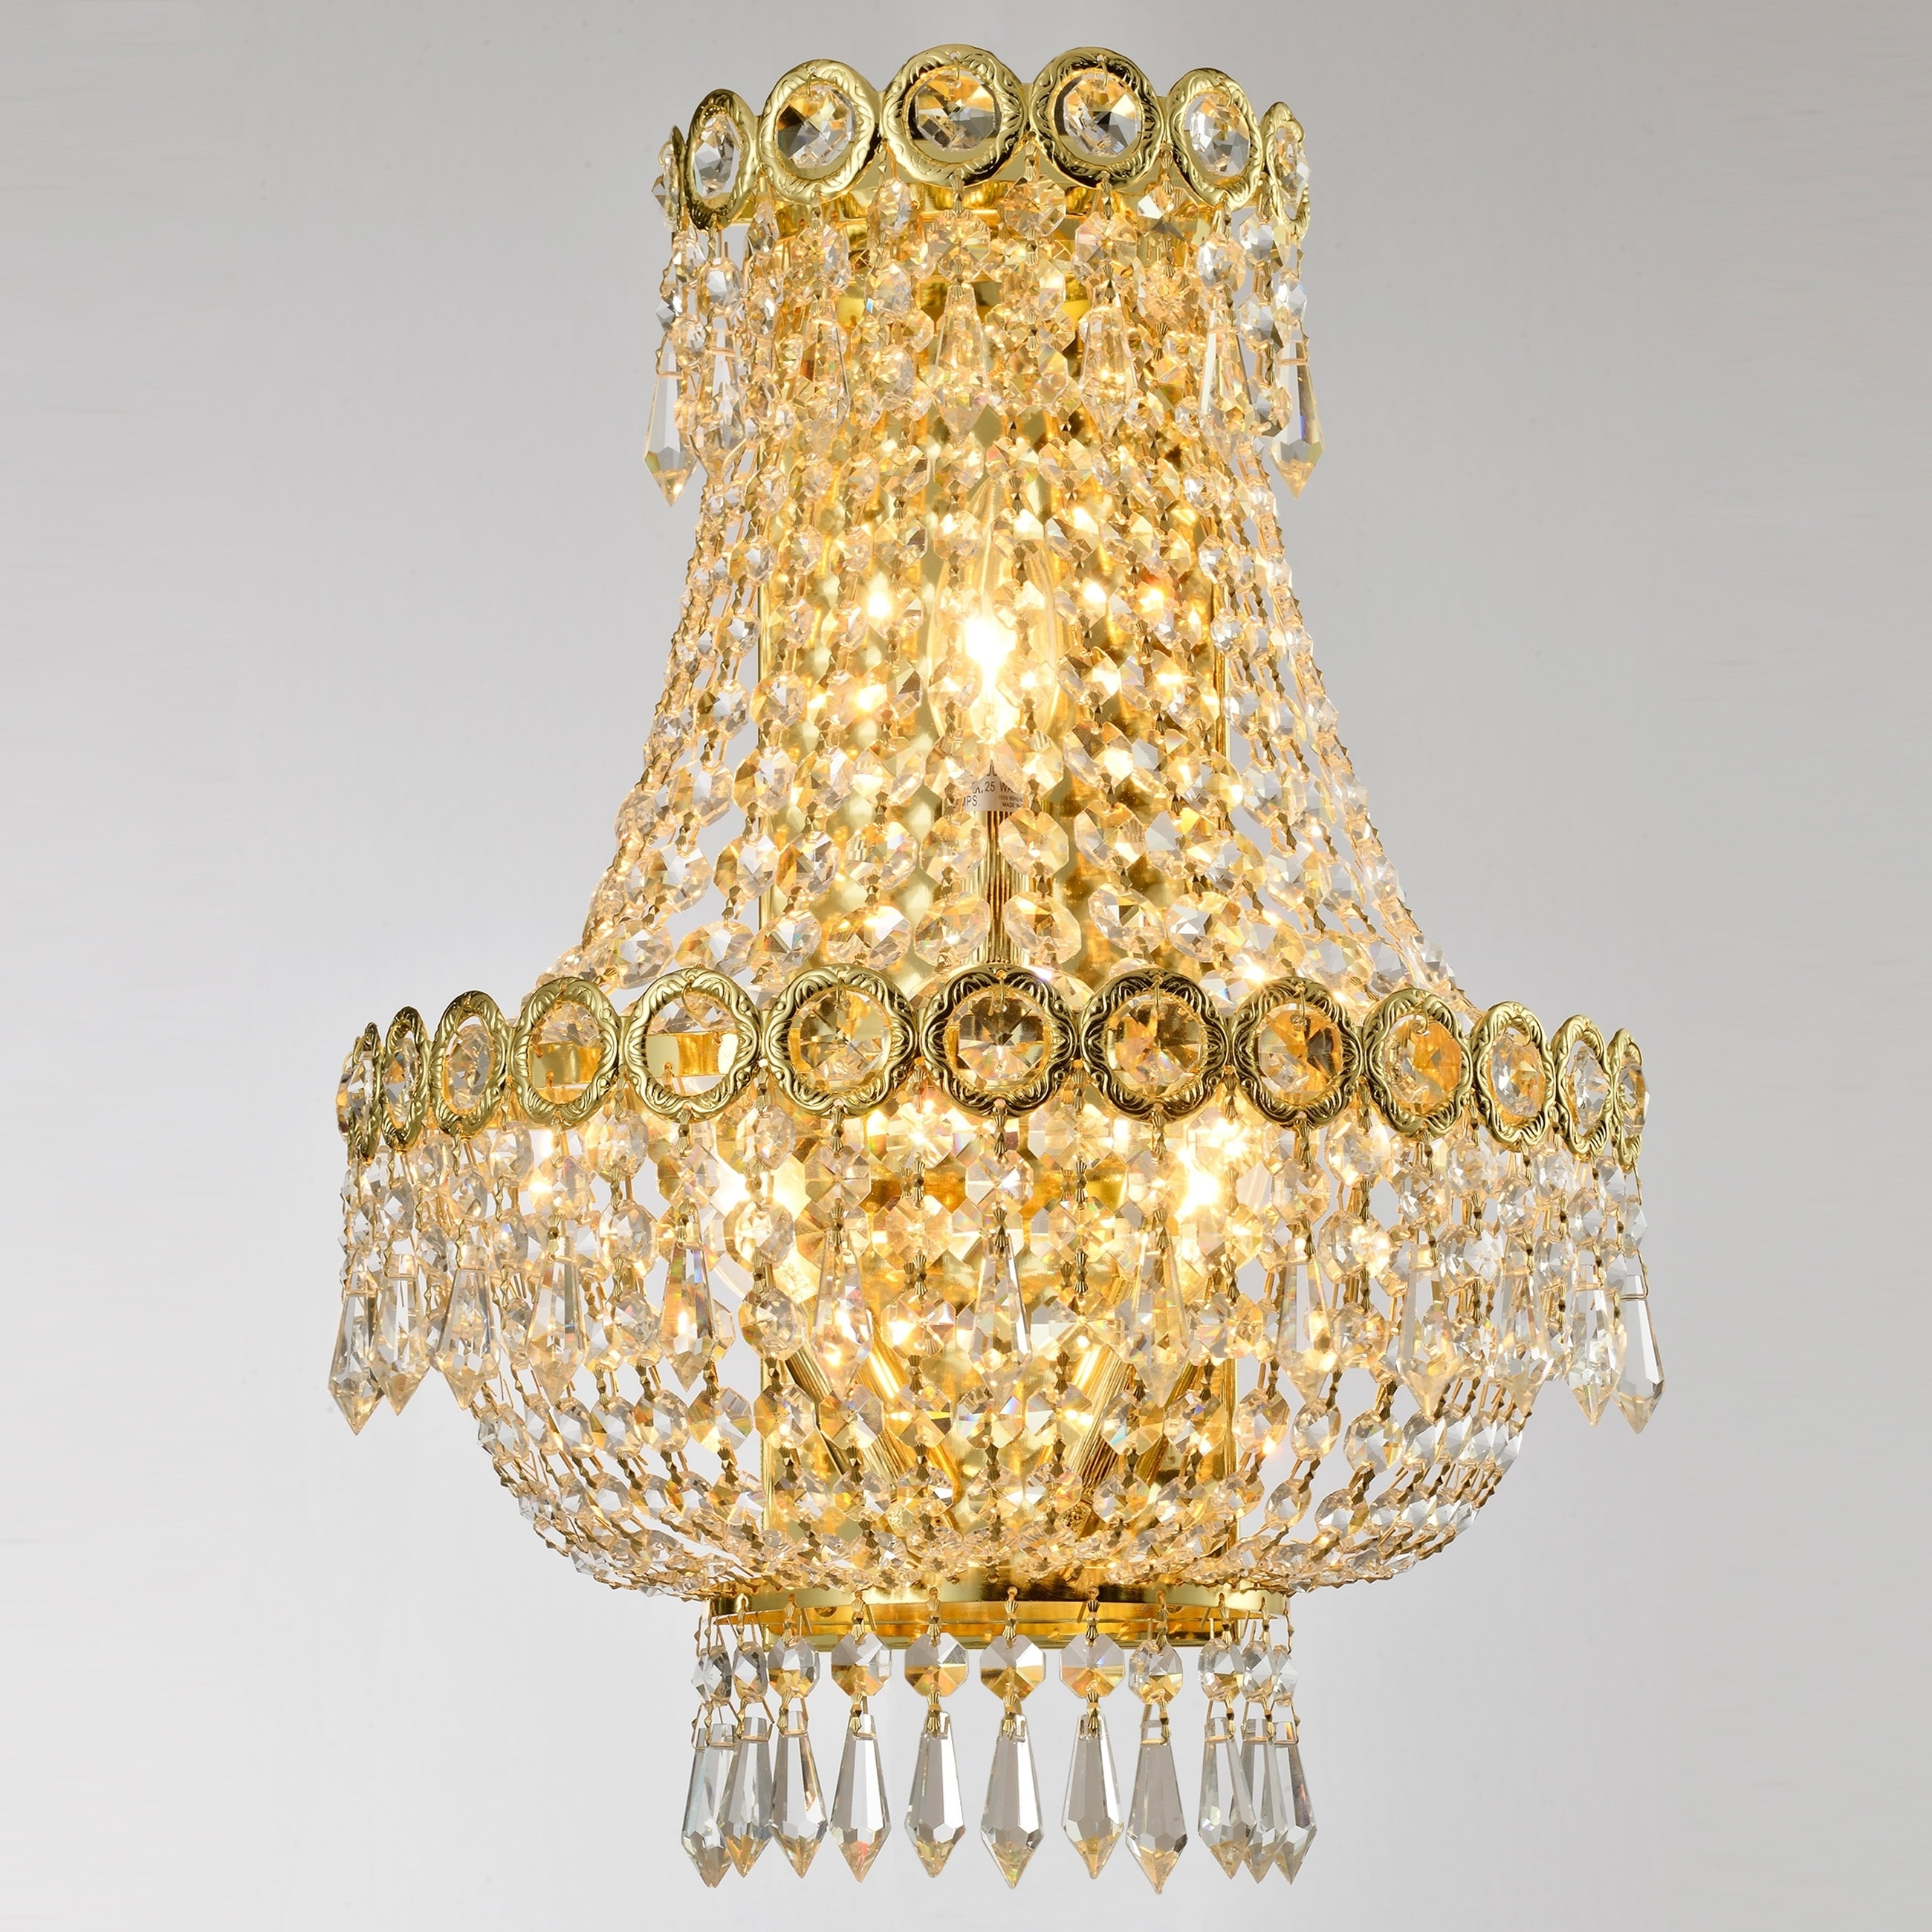 Image of: Shop French Empire 3 Light 12 In Gold Finish Crystal Wall Sconce Light Medium Medium Wall Sconce Overstock 29813798